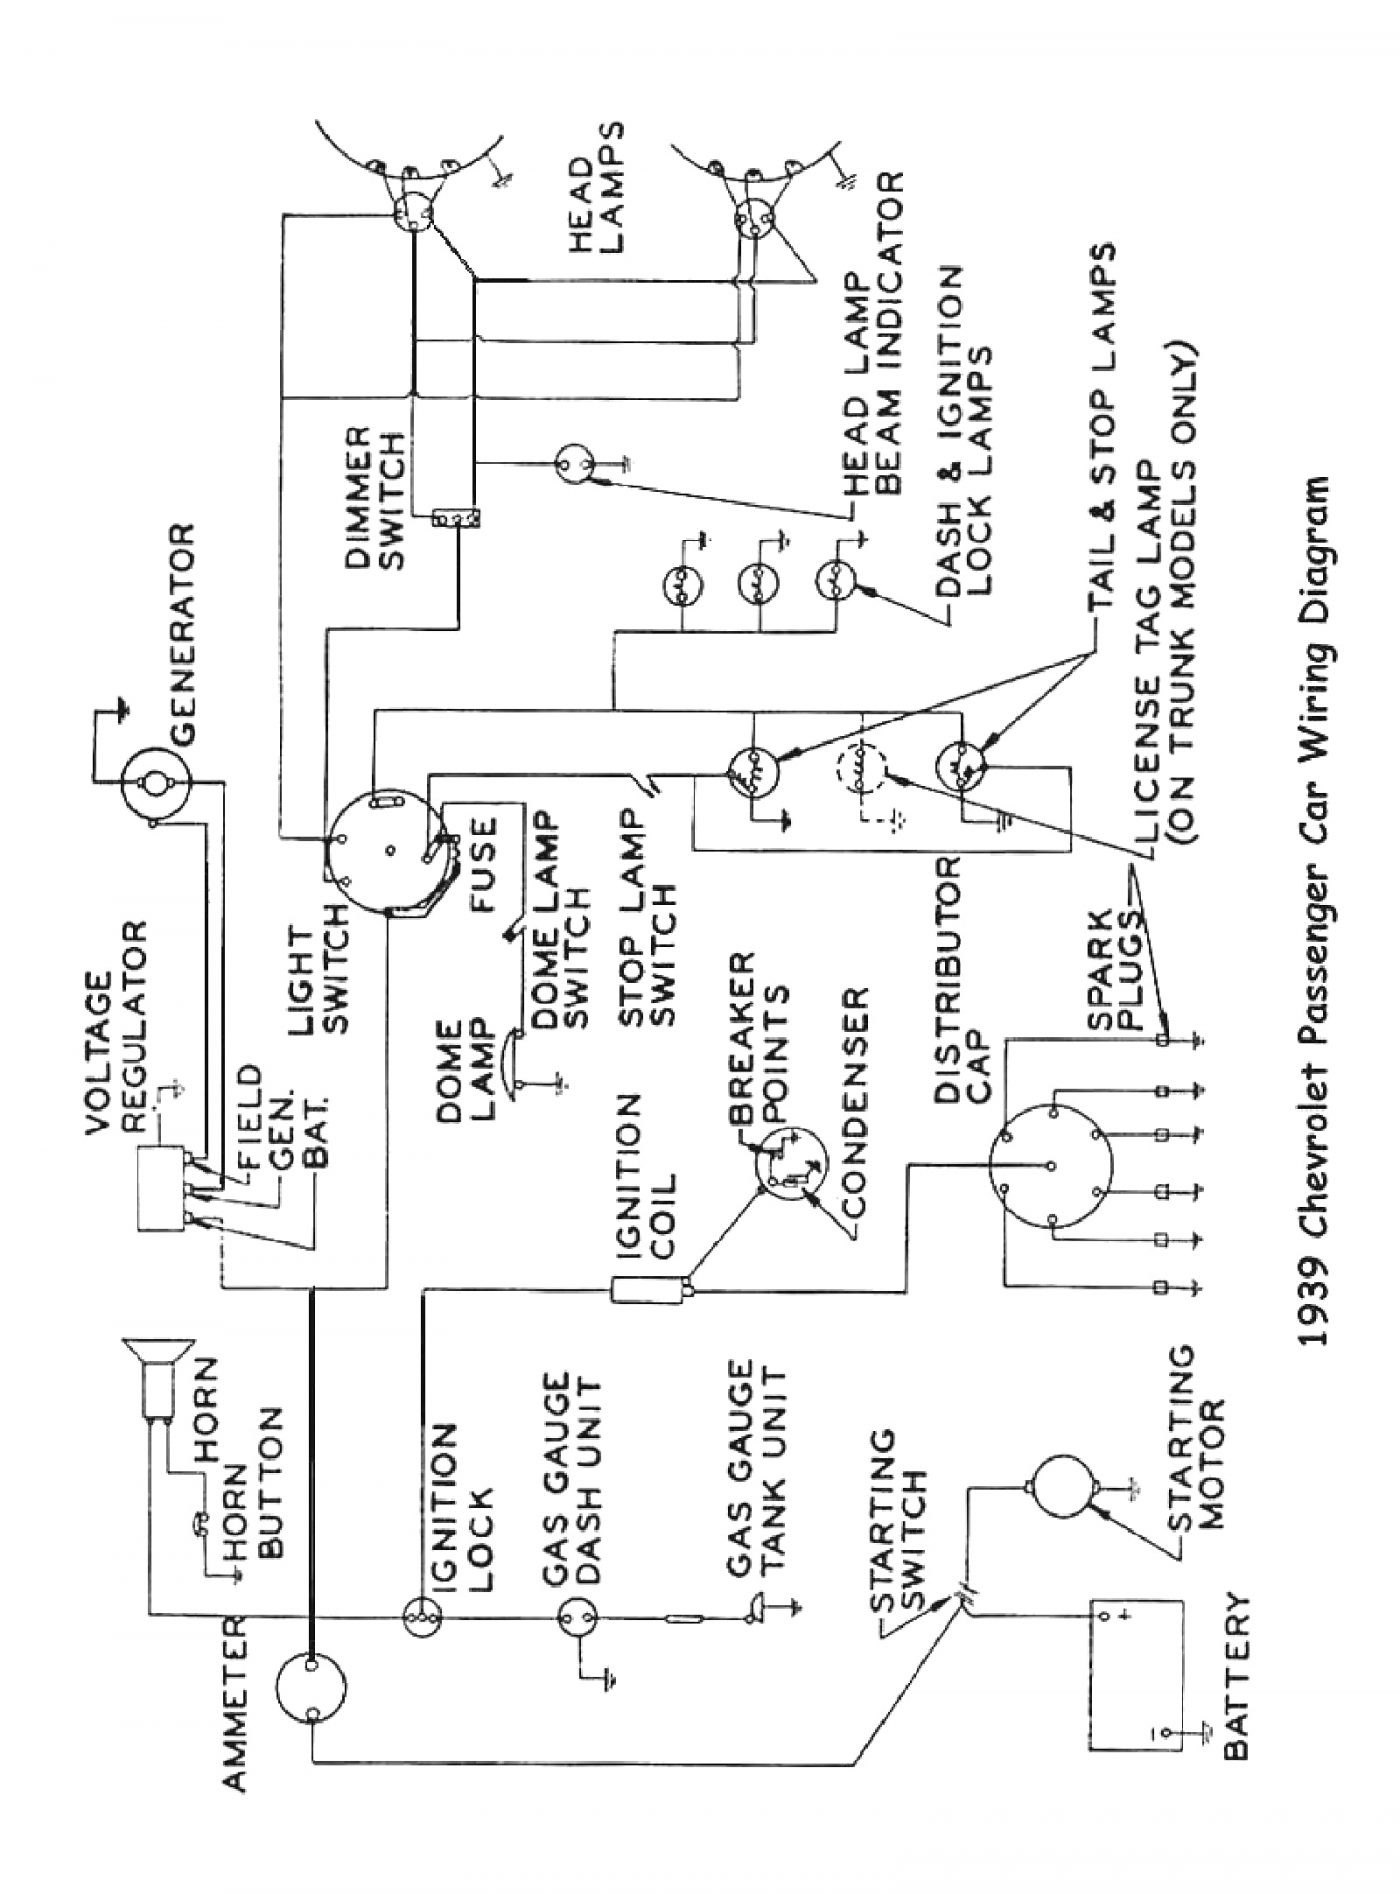 M2 Amu Wiring Diagram